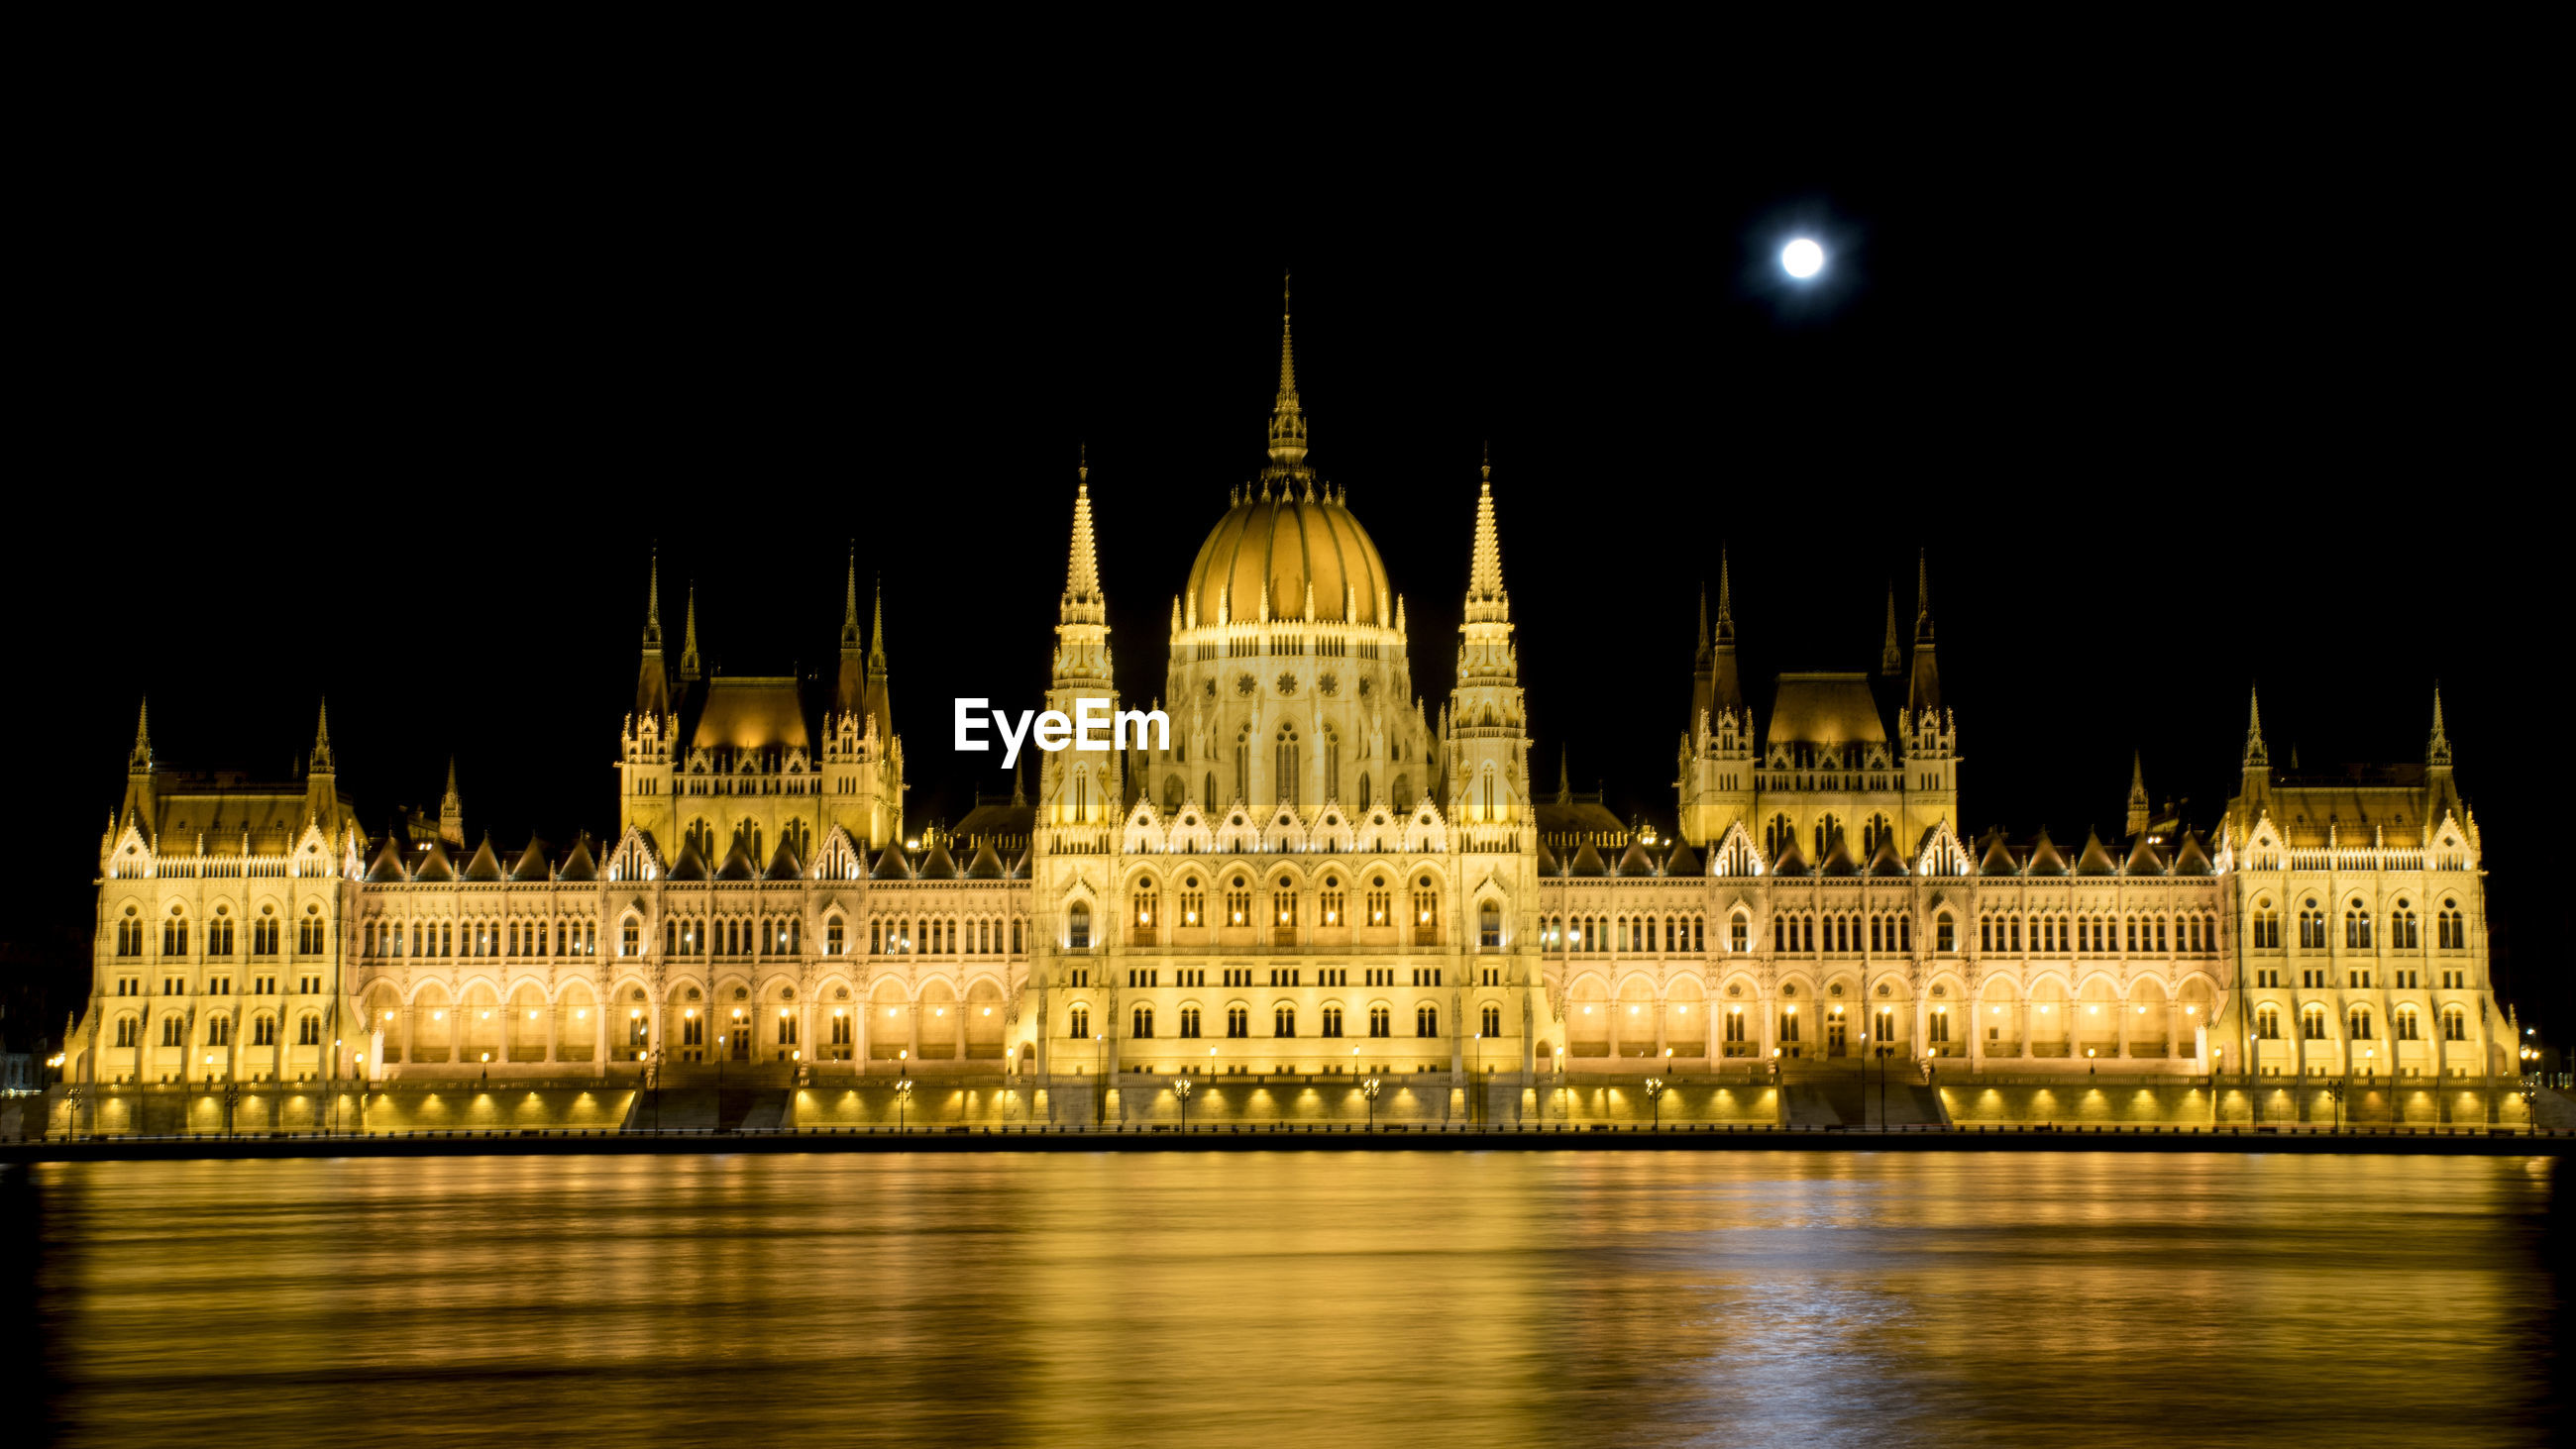 View of illuminated parliament building against clear sky at night